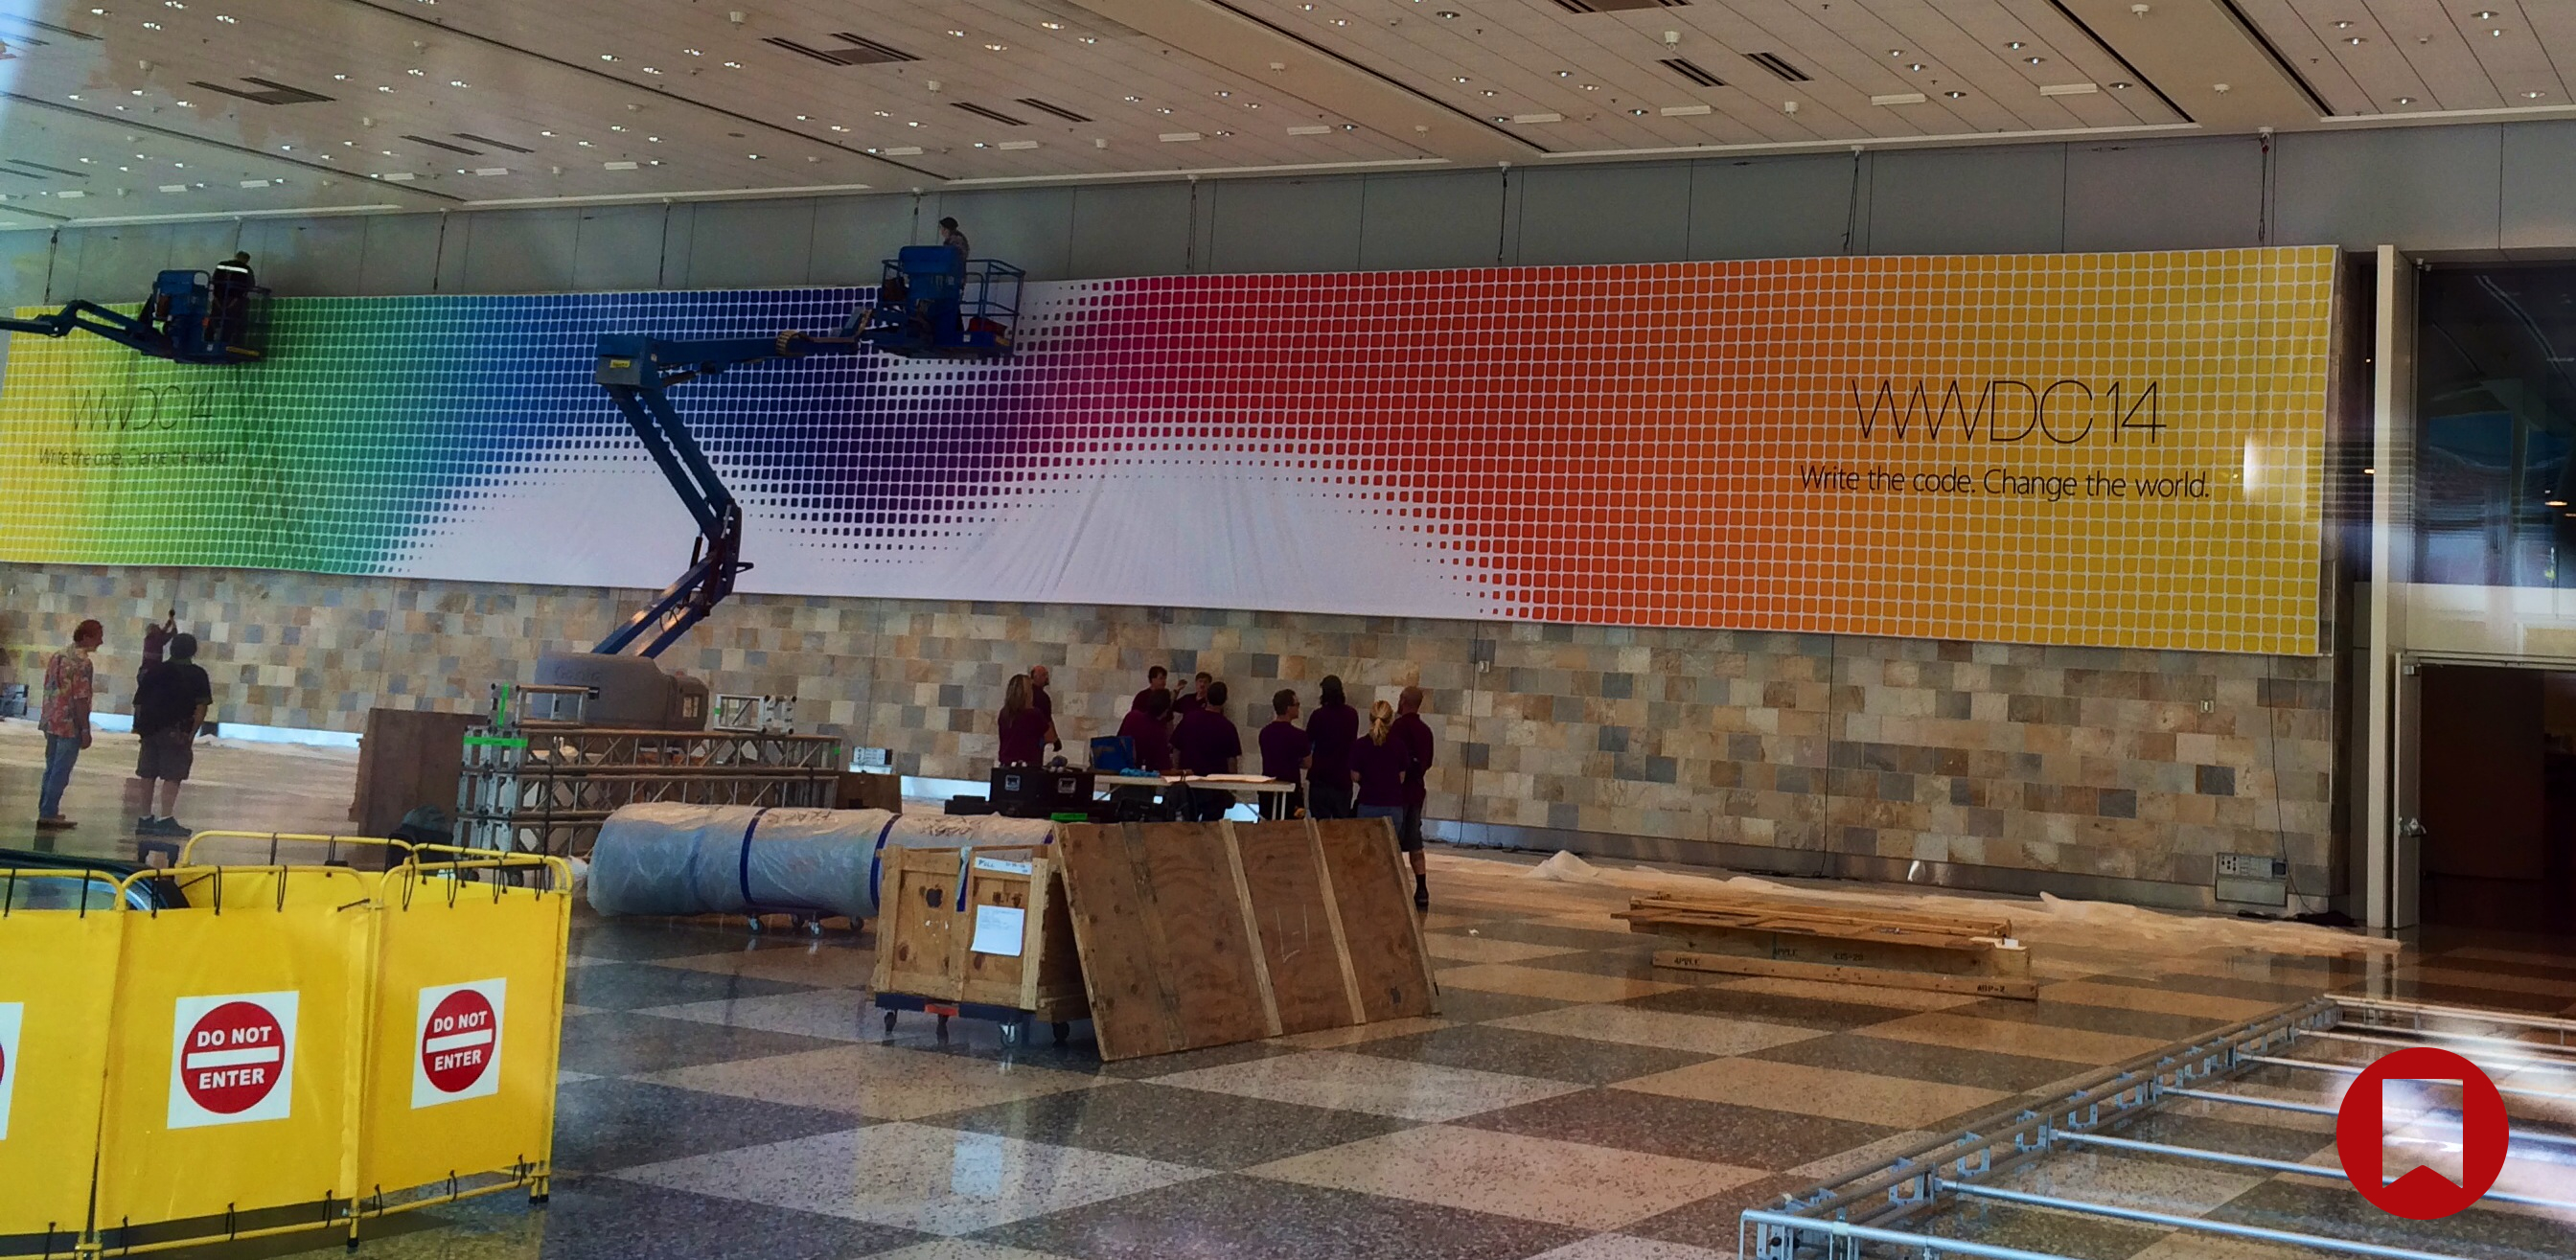 Apple's WWDC 2014 banner at Moscone West. Click image for full-size.